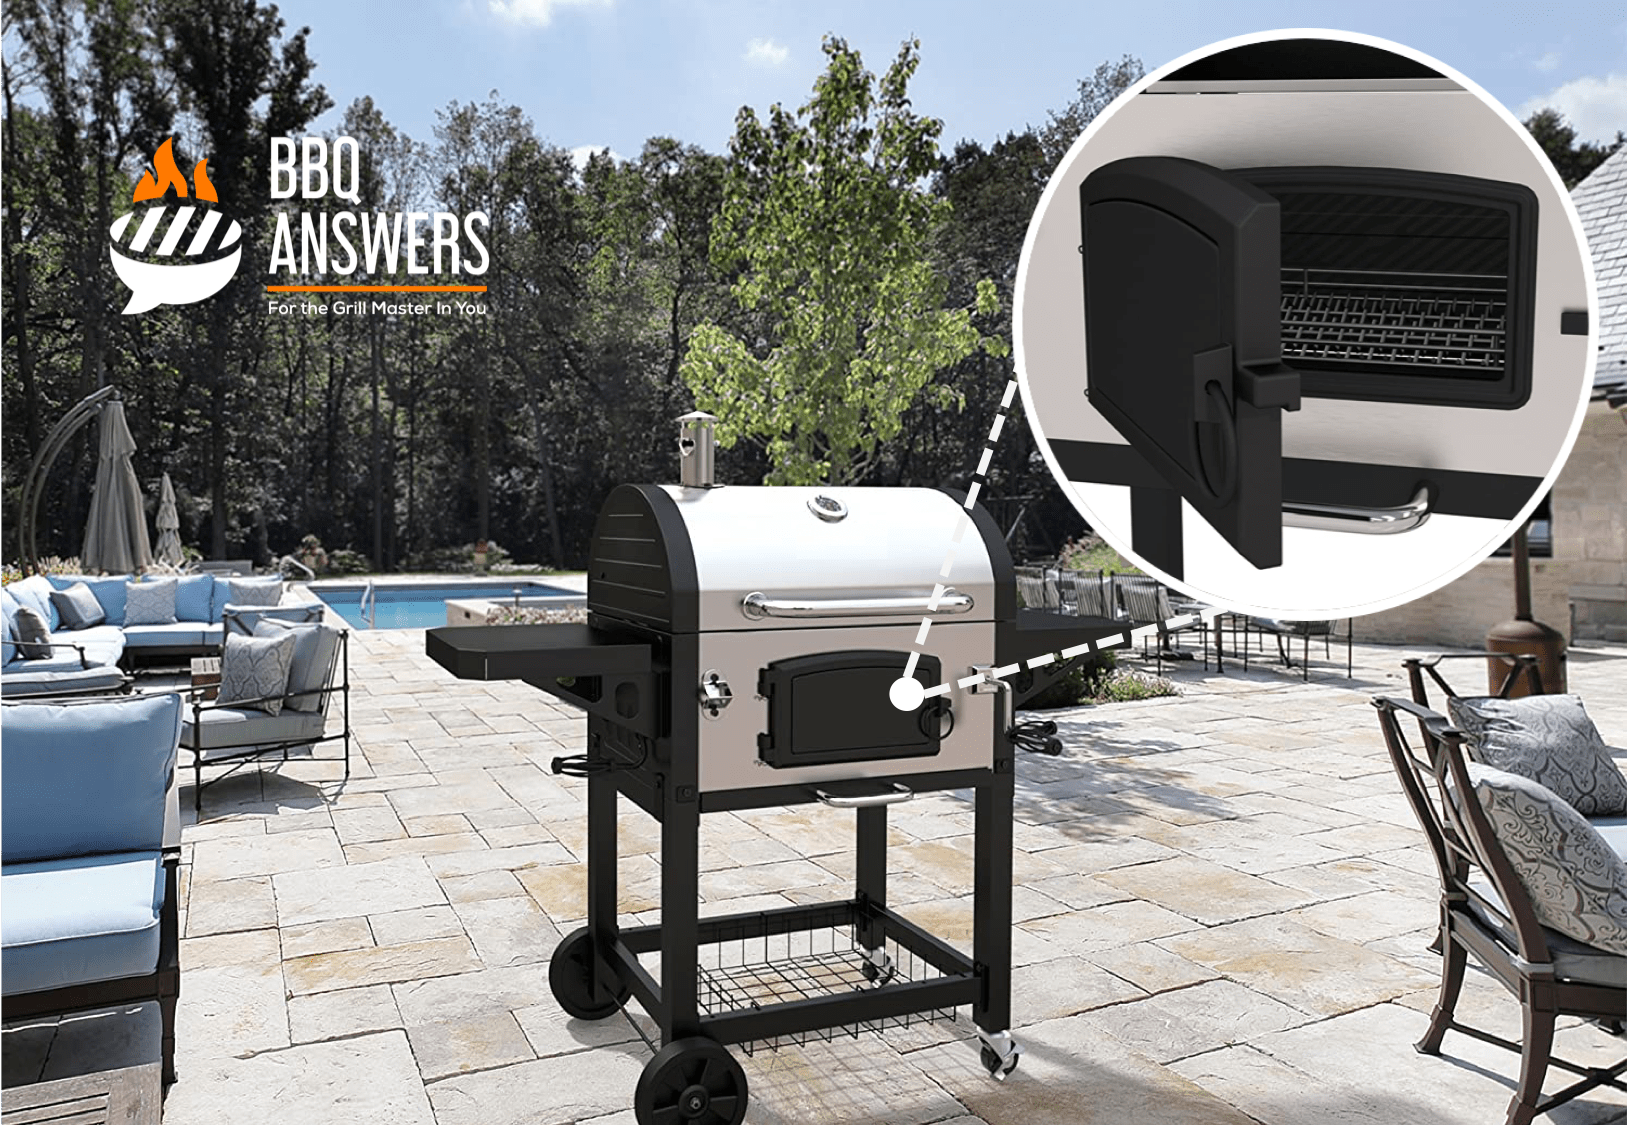 Dedicated Fire Door | Charcoal Grill | BBQanswers